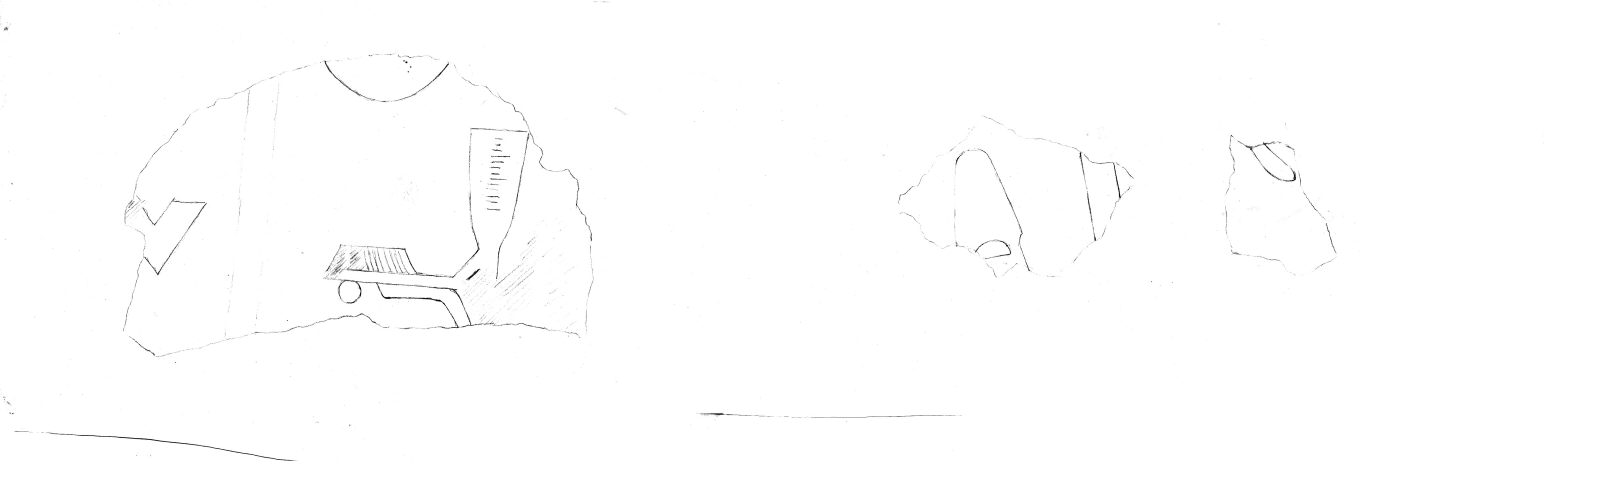 Drawings: G 2111, Shaft C: fragments of relief